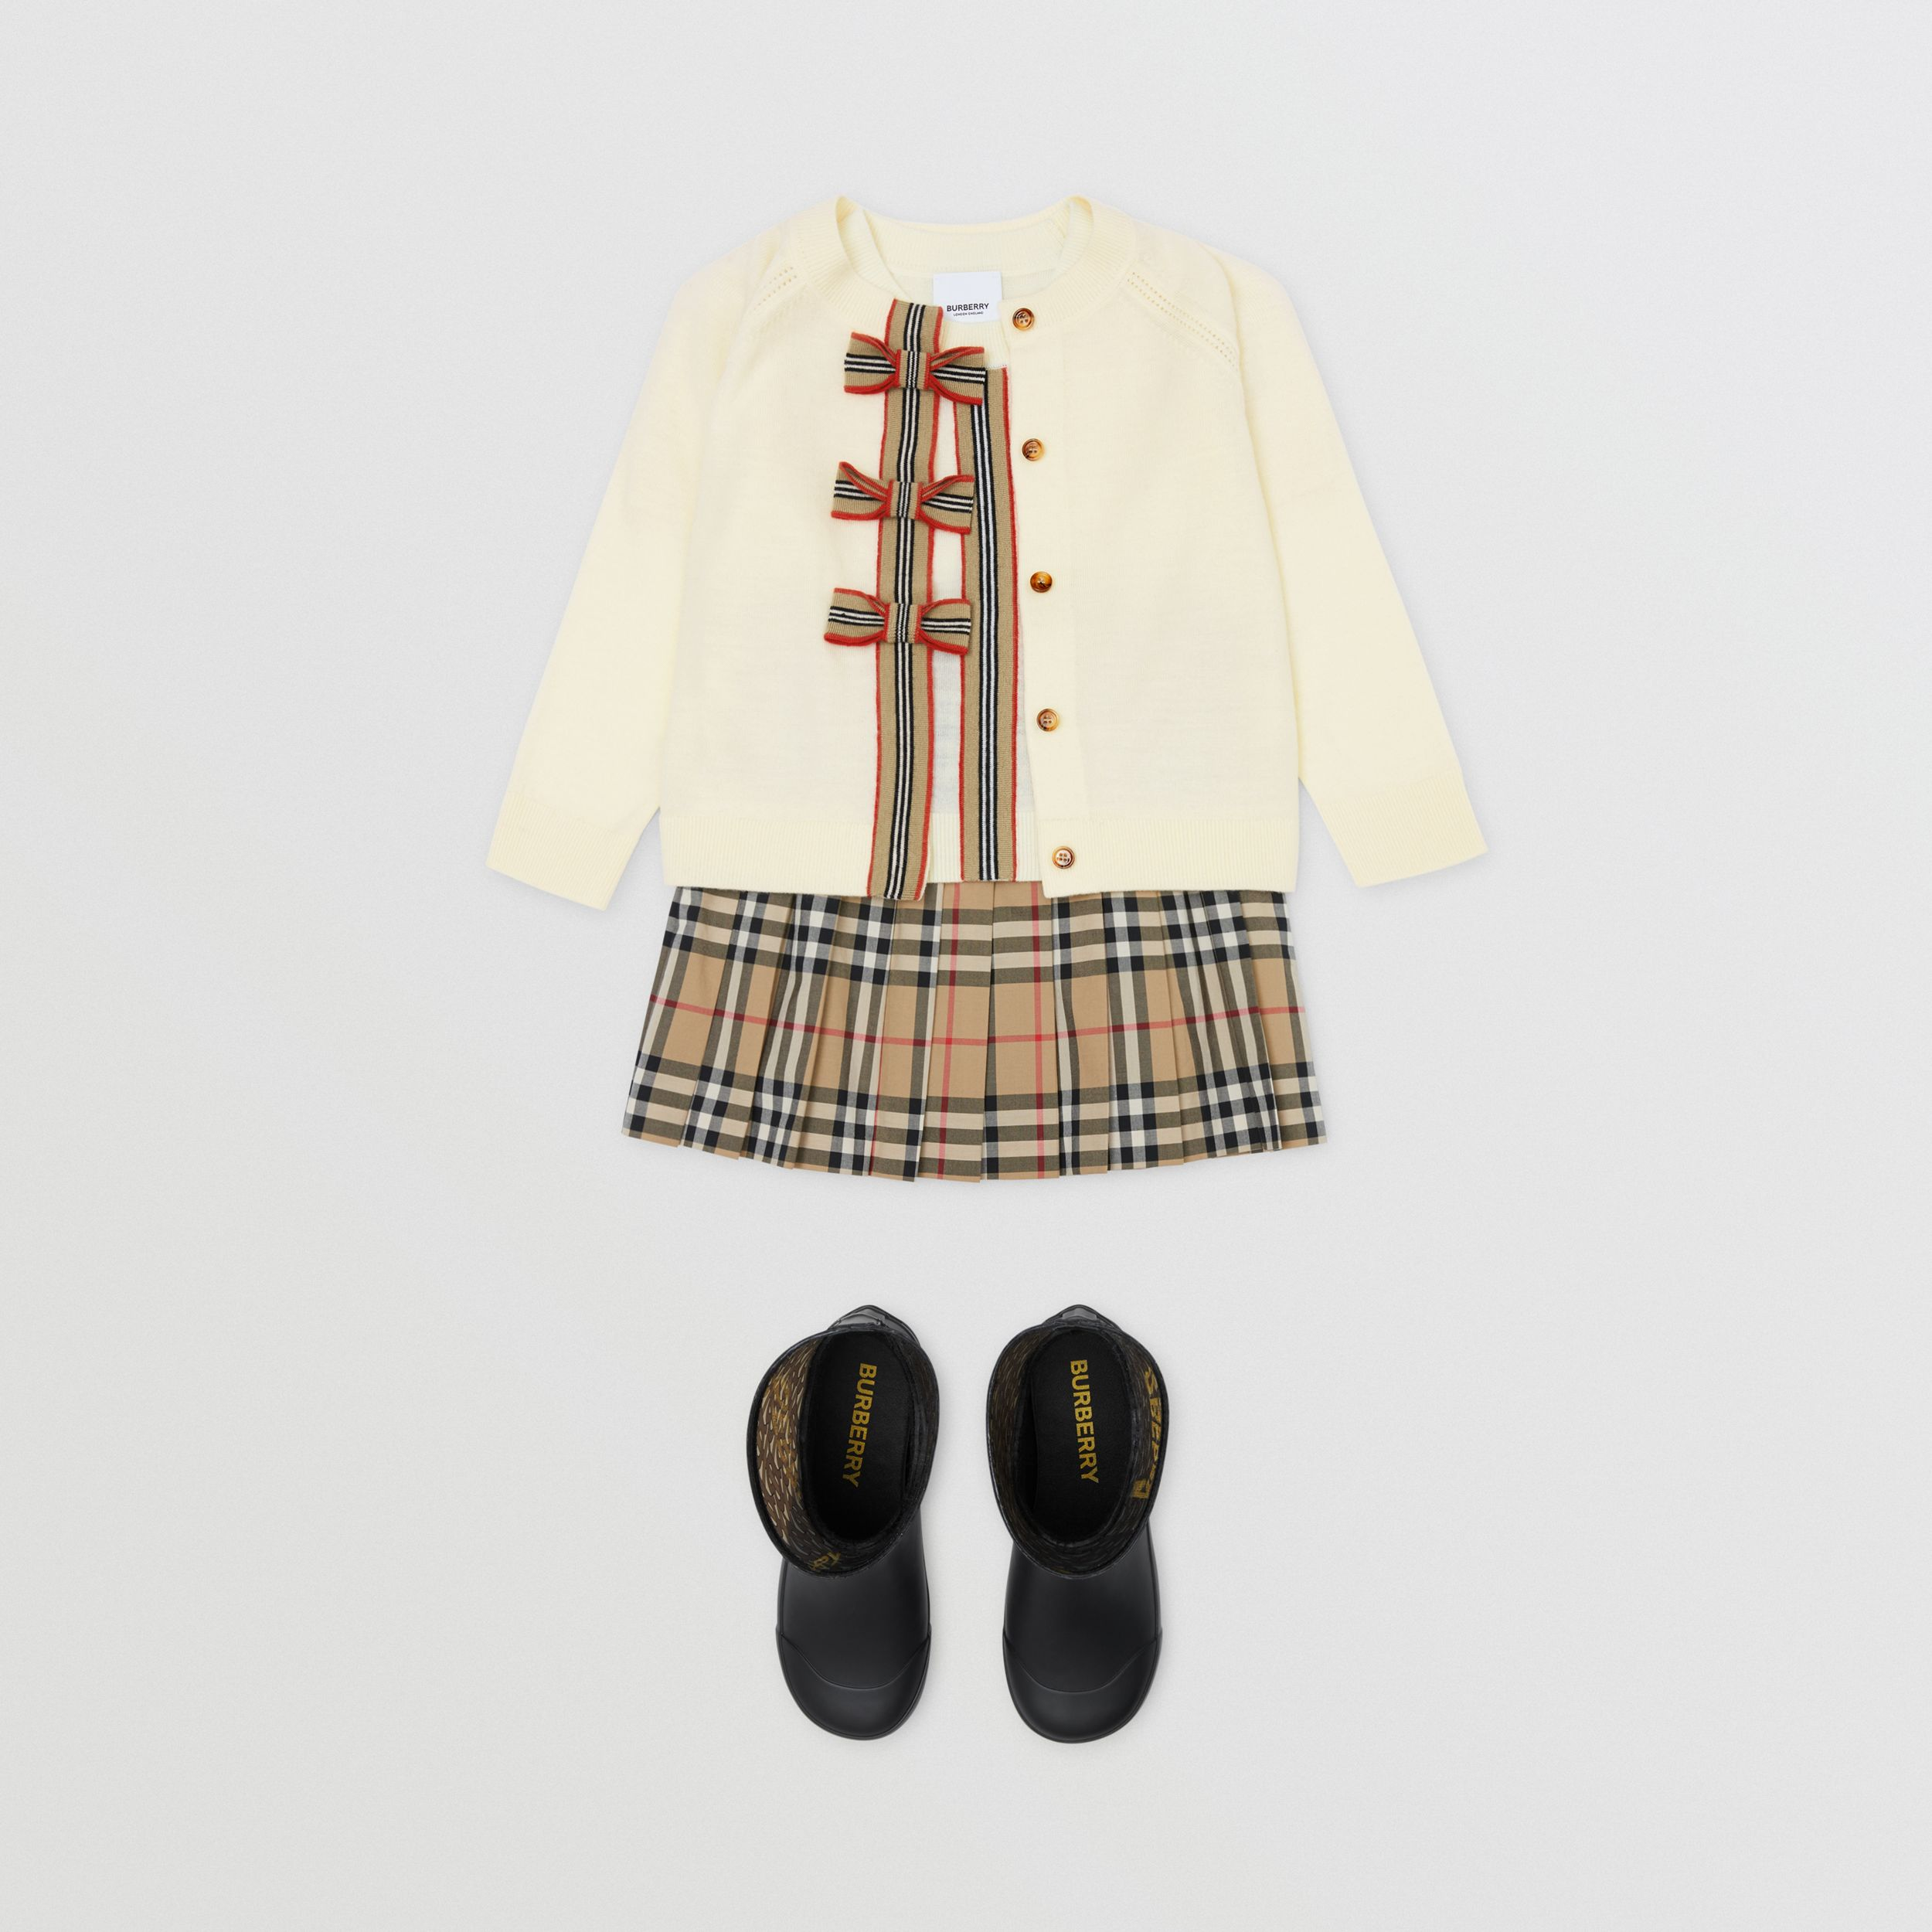 Icon Stripe Trim Merino Wool Two-piece Set in Ivory | Burberry - 3